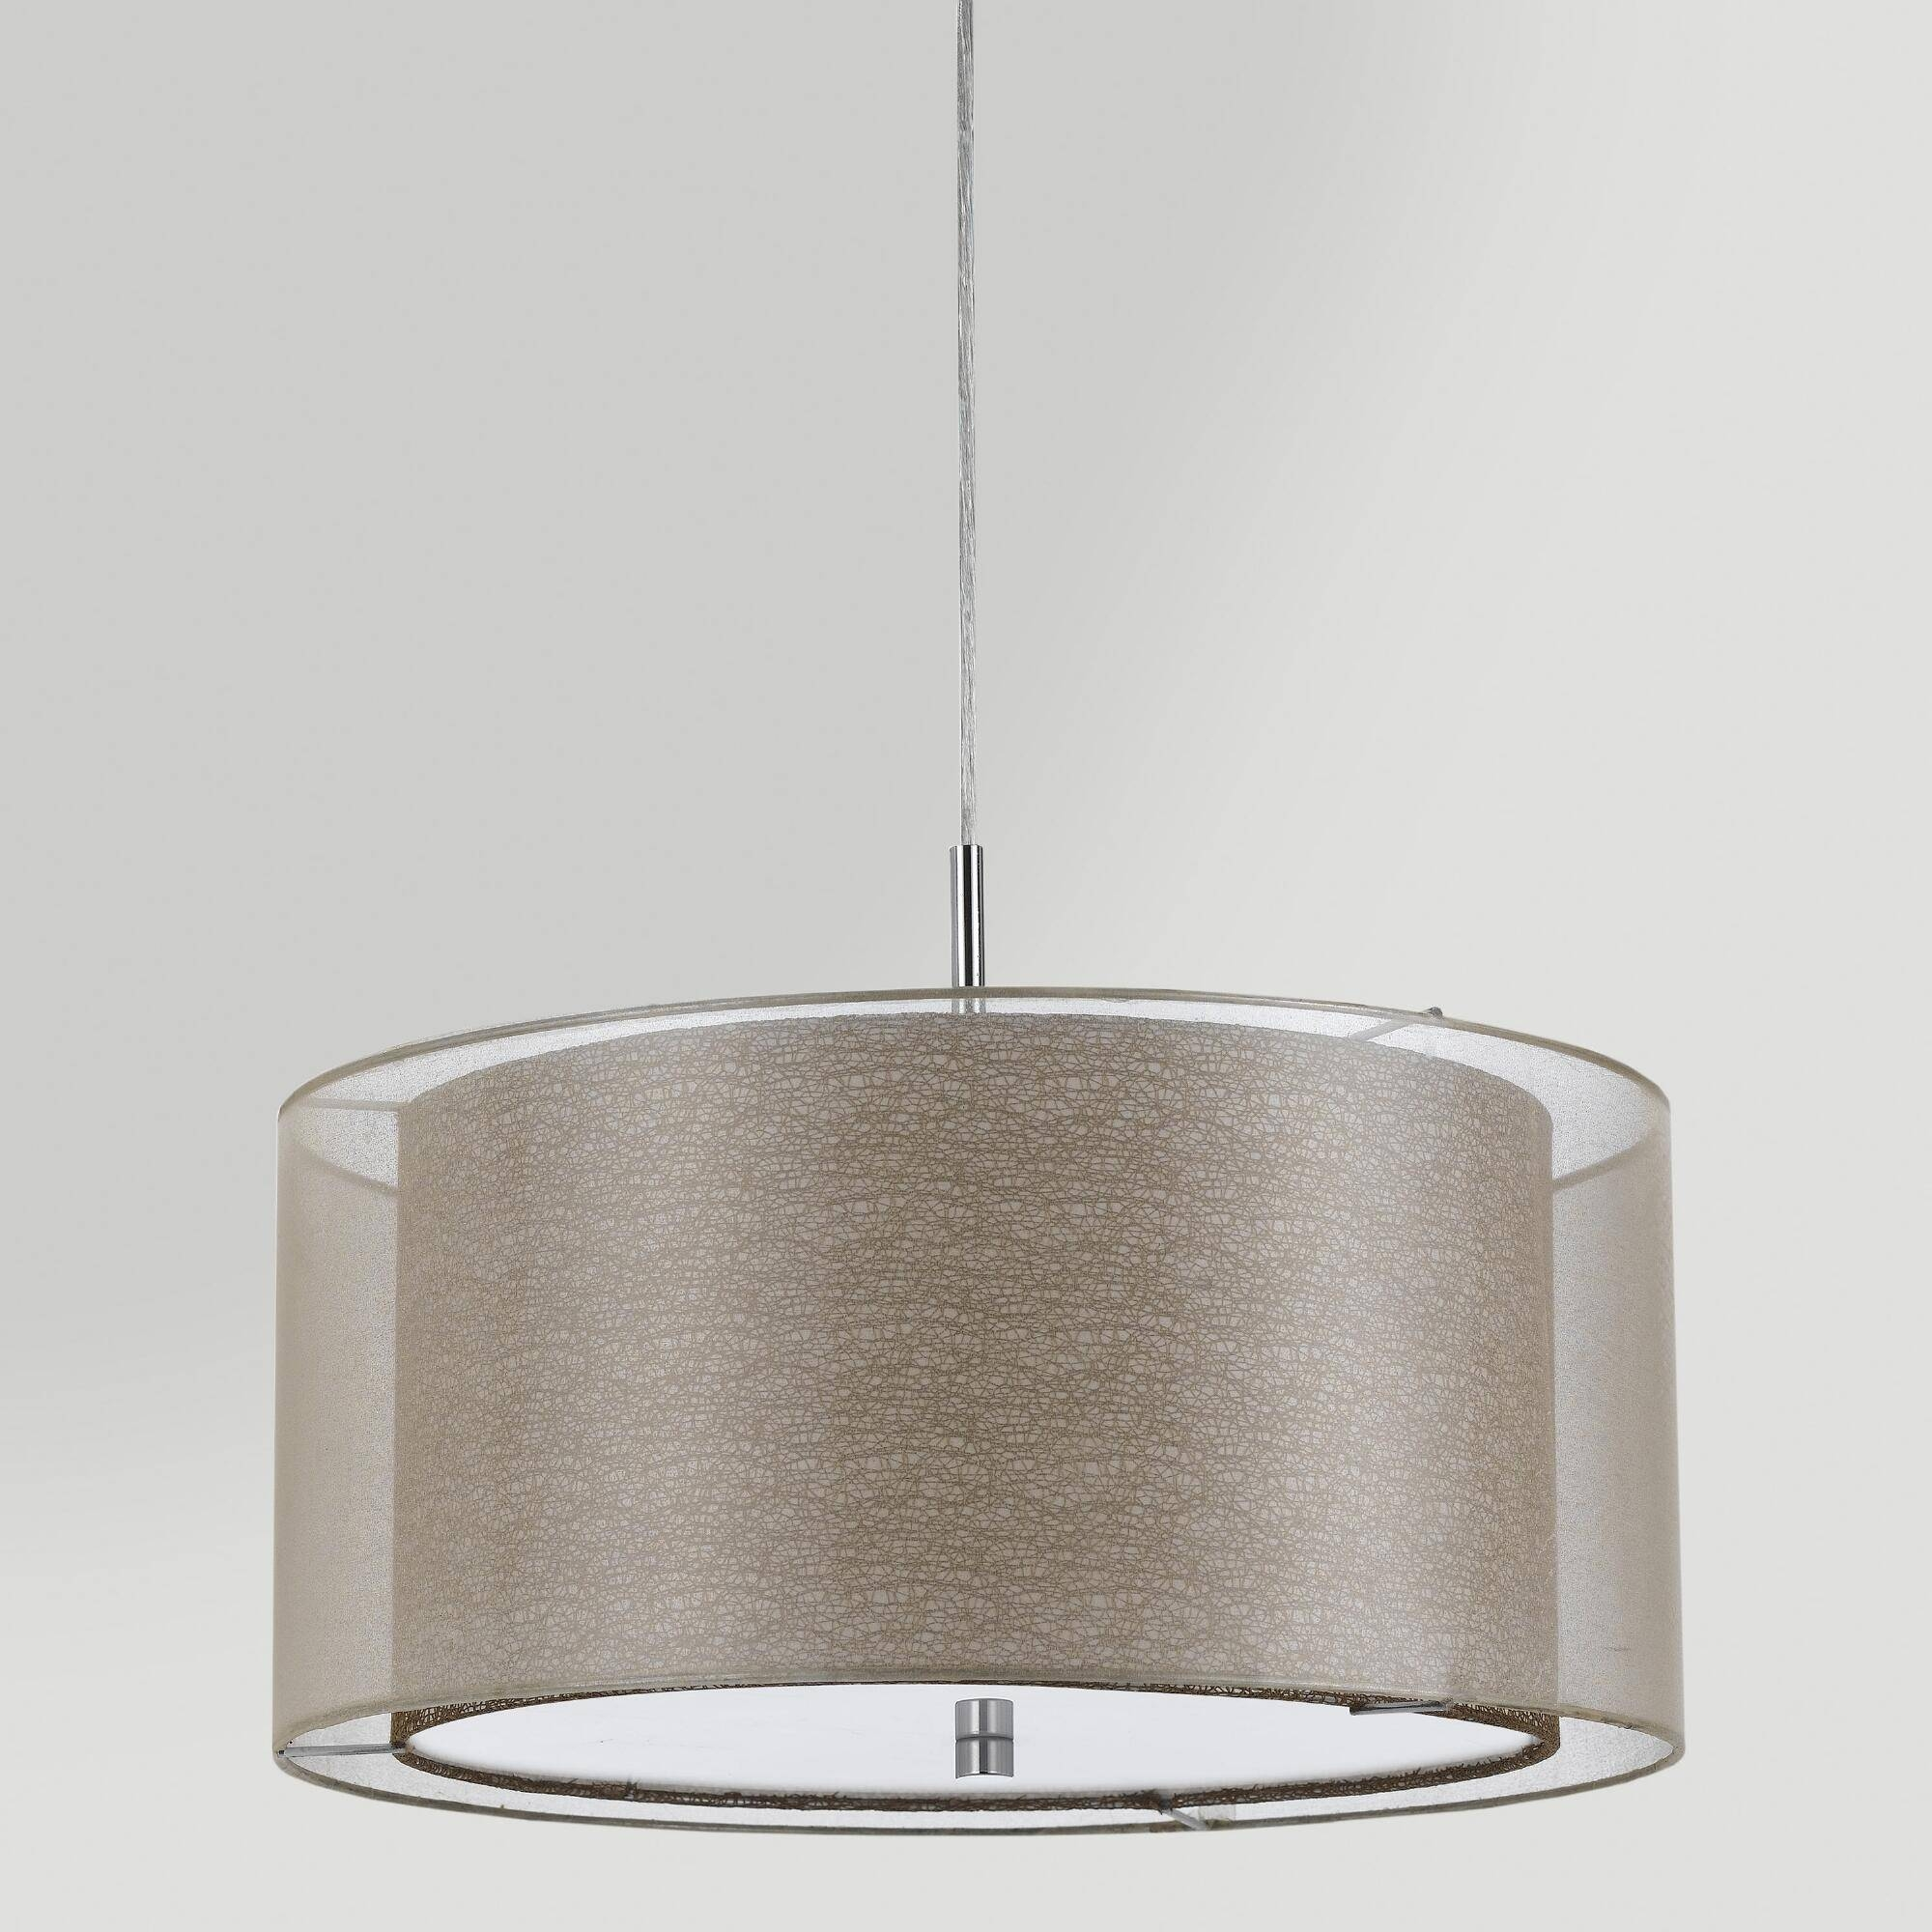 Hanging Pendant Lights - Hbwonong throughout Oval Pendant Lights Fixtures (Image 7 of 15)